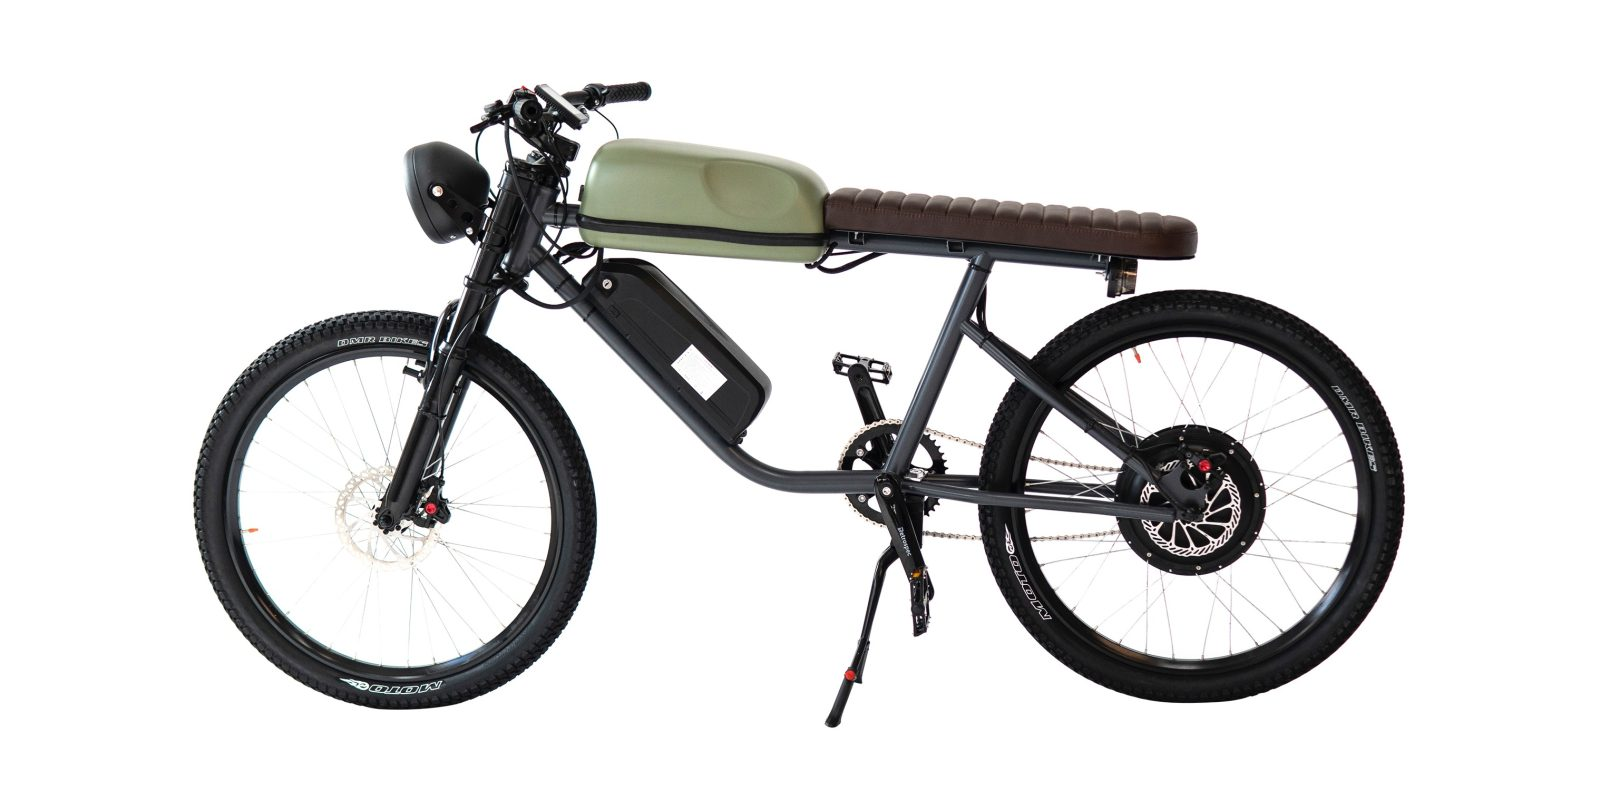 483010da5cc Electric bicycles are becoming so popular that they are now available in a  wide range of styles. While conventional categories like electric road bikes  and ...